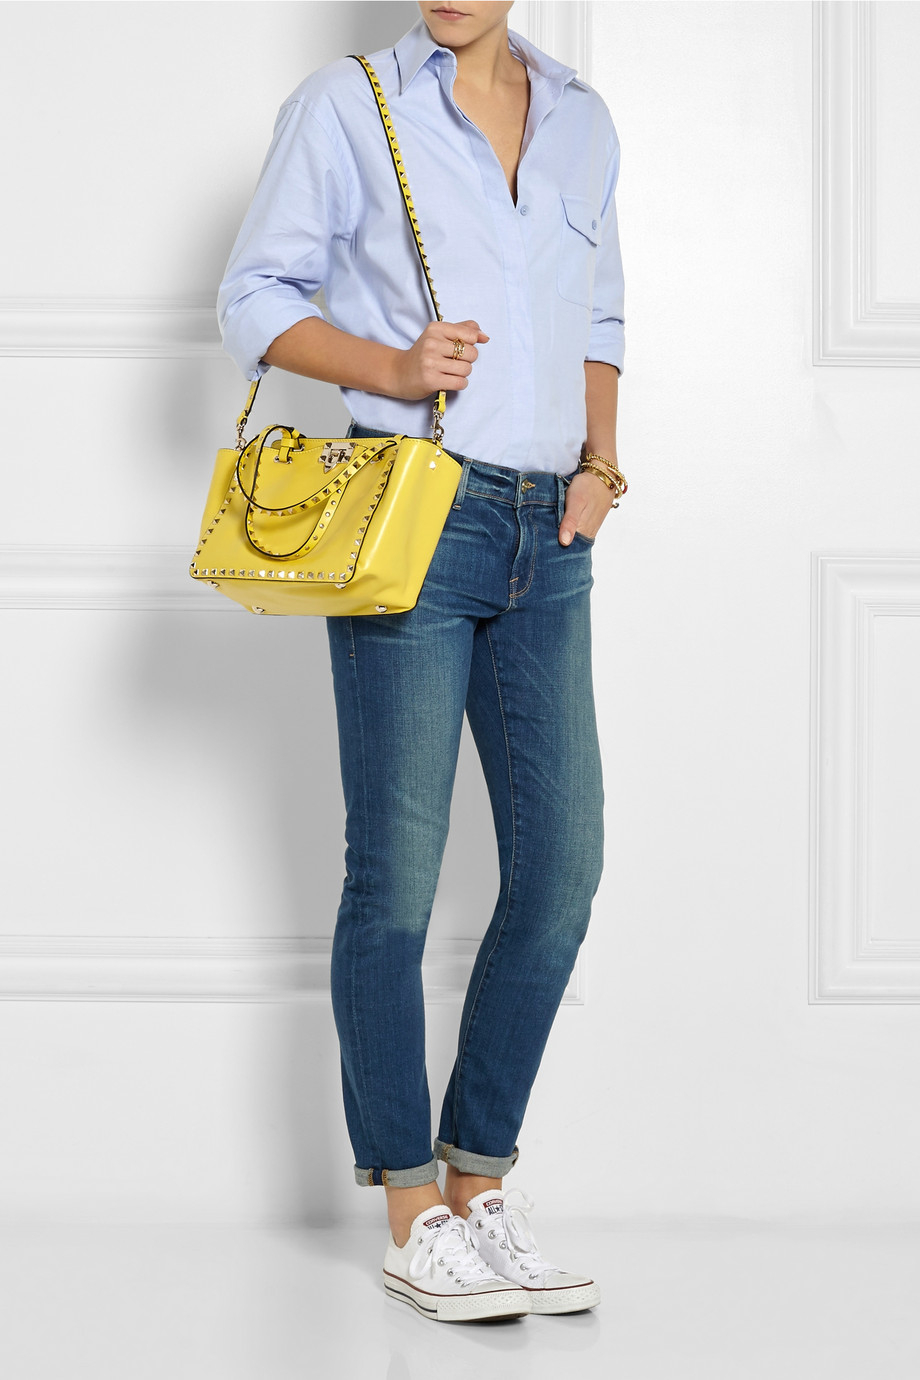 2bacbdaa6e8 Valentino The Rockstud Small Leather Trapeze Bag in Yellow - Lyst